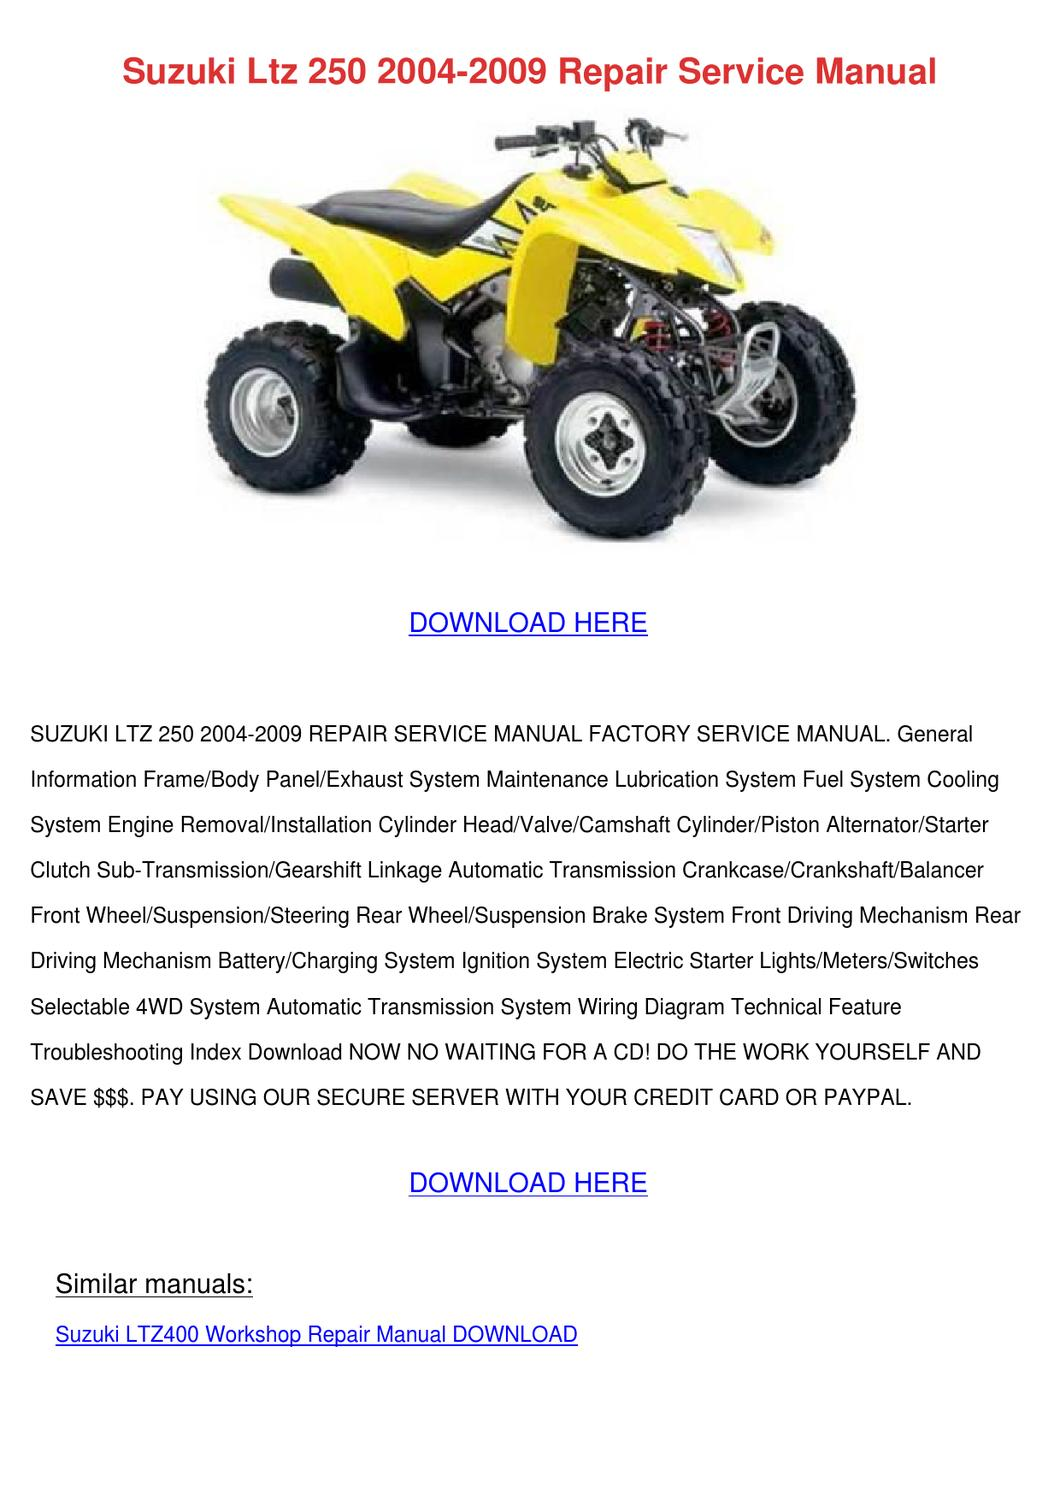 Suzuki Ltz 250 2004 2009 Repair Service Manua By Willardthao Issuu 400 4x4 Wiring Diagram